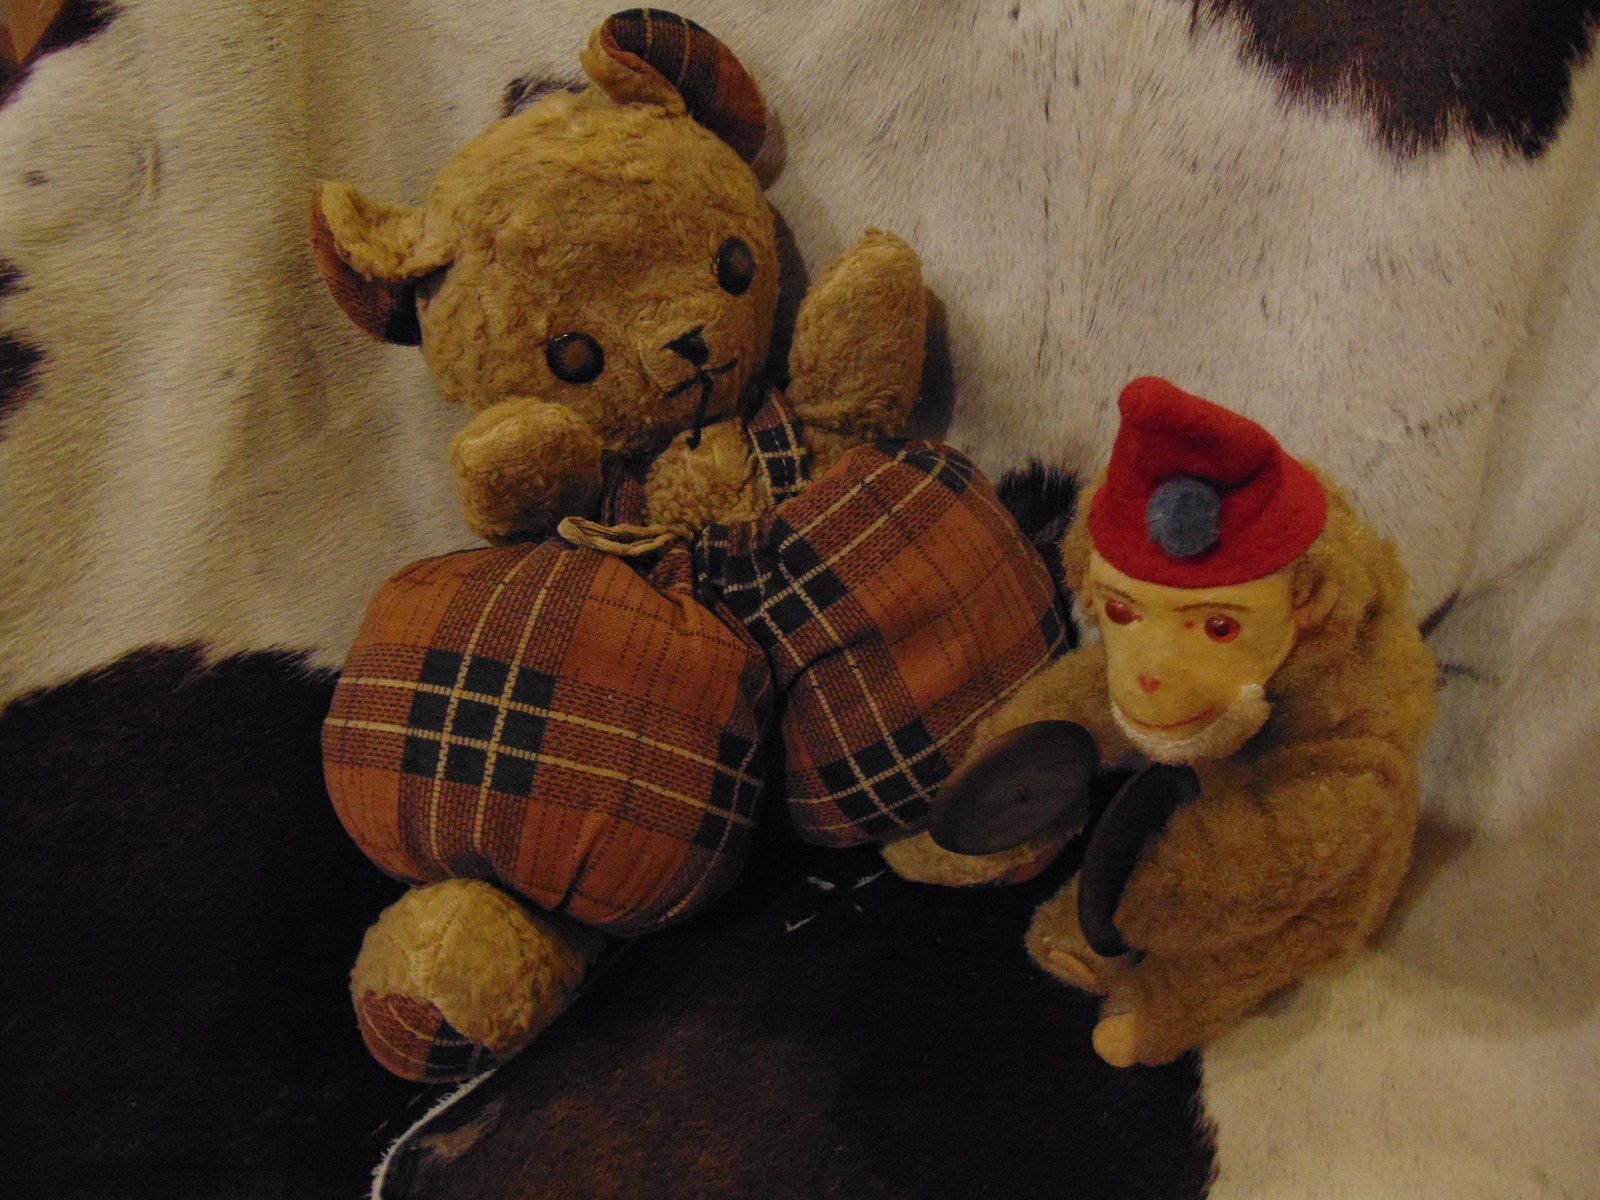 1960s Cubbi bear by Gund and Monkey from Germany - $34.95